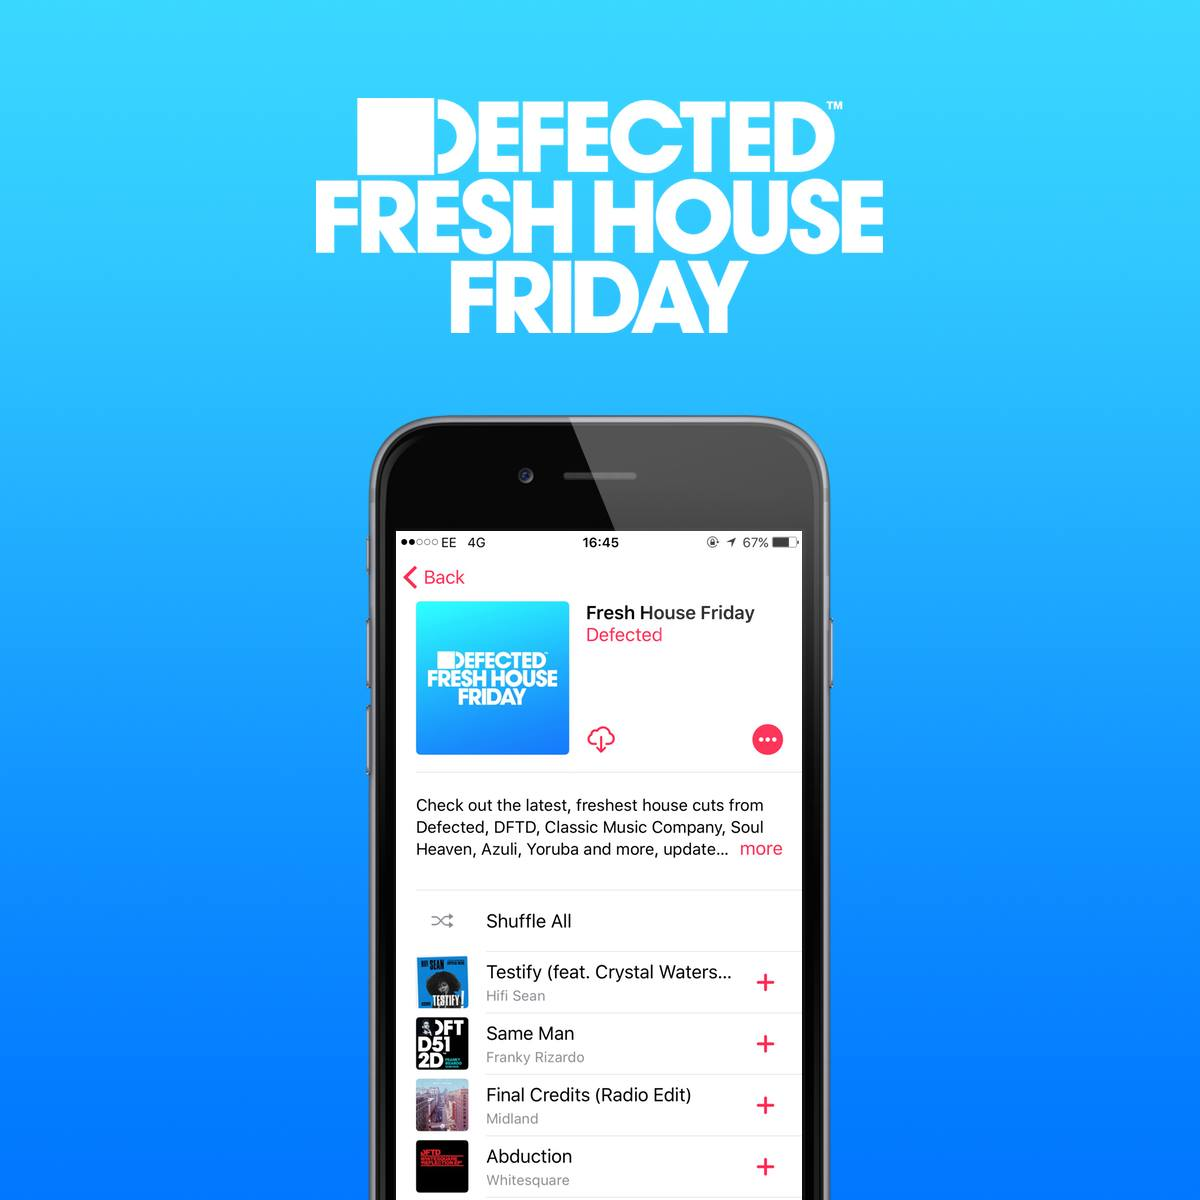 Fresh House Friday By Defected (2018-04-27)